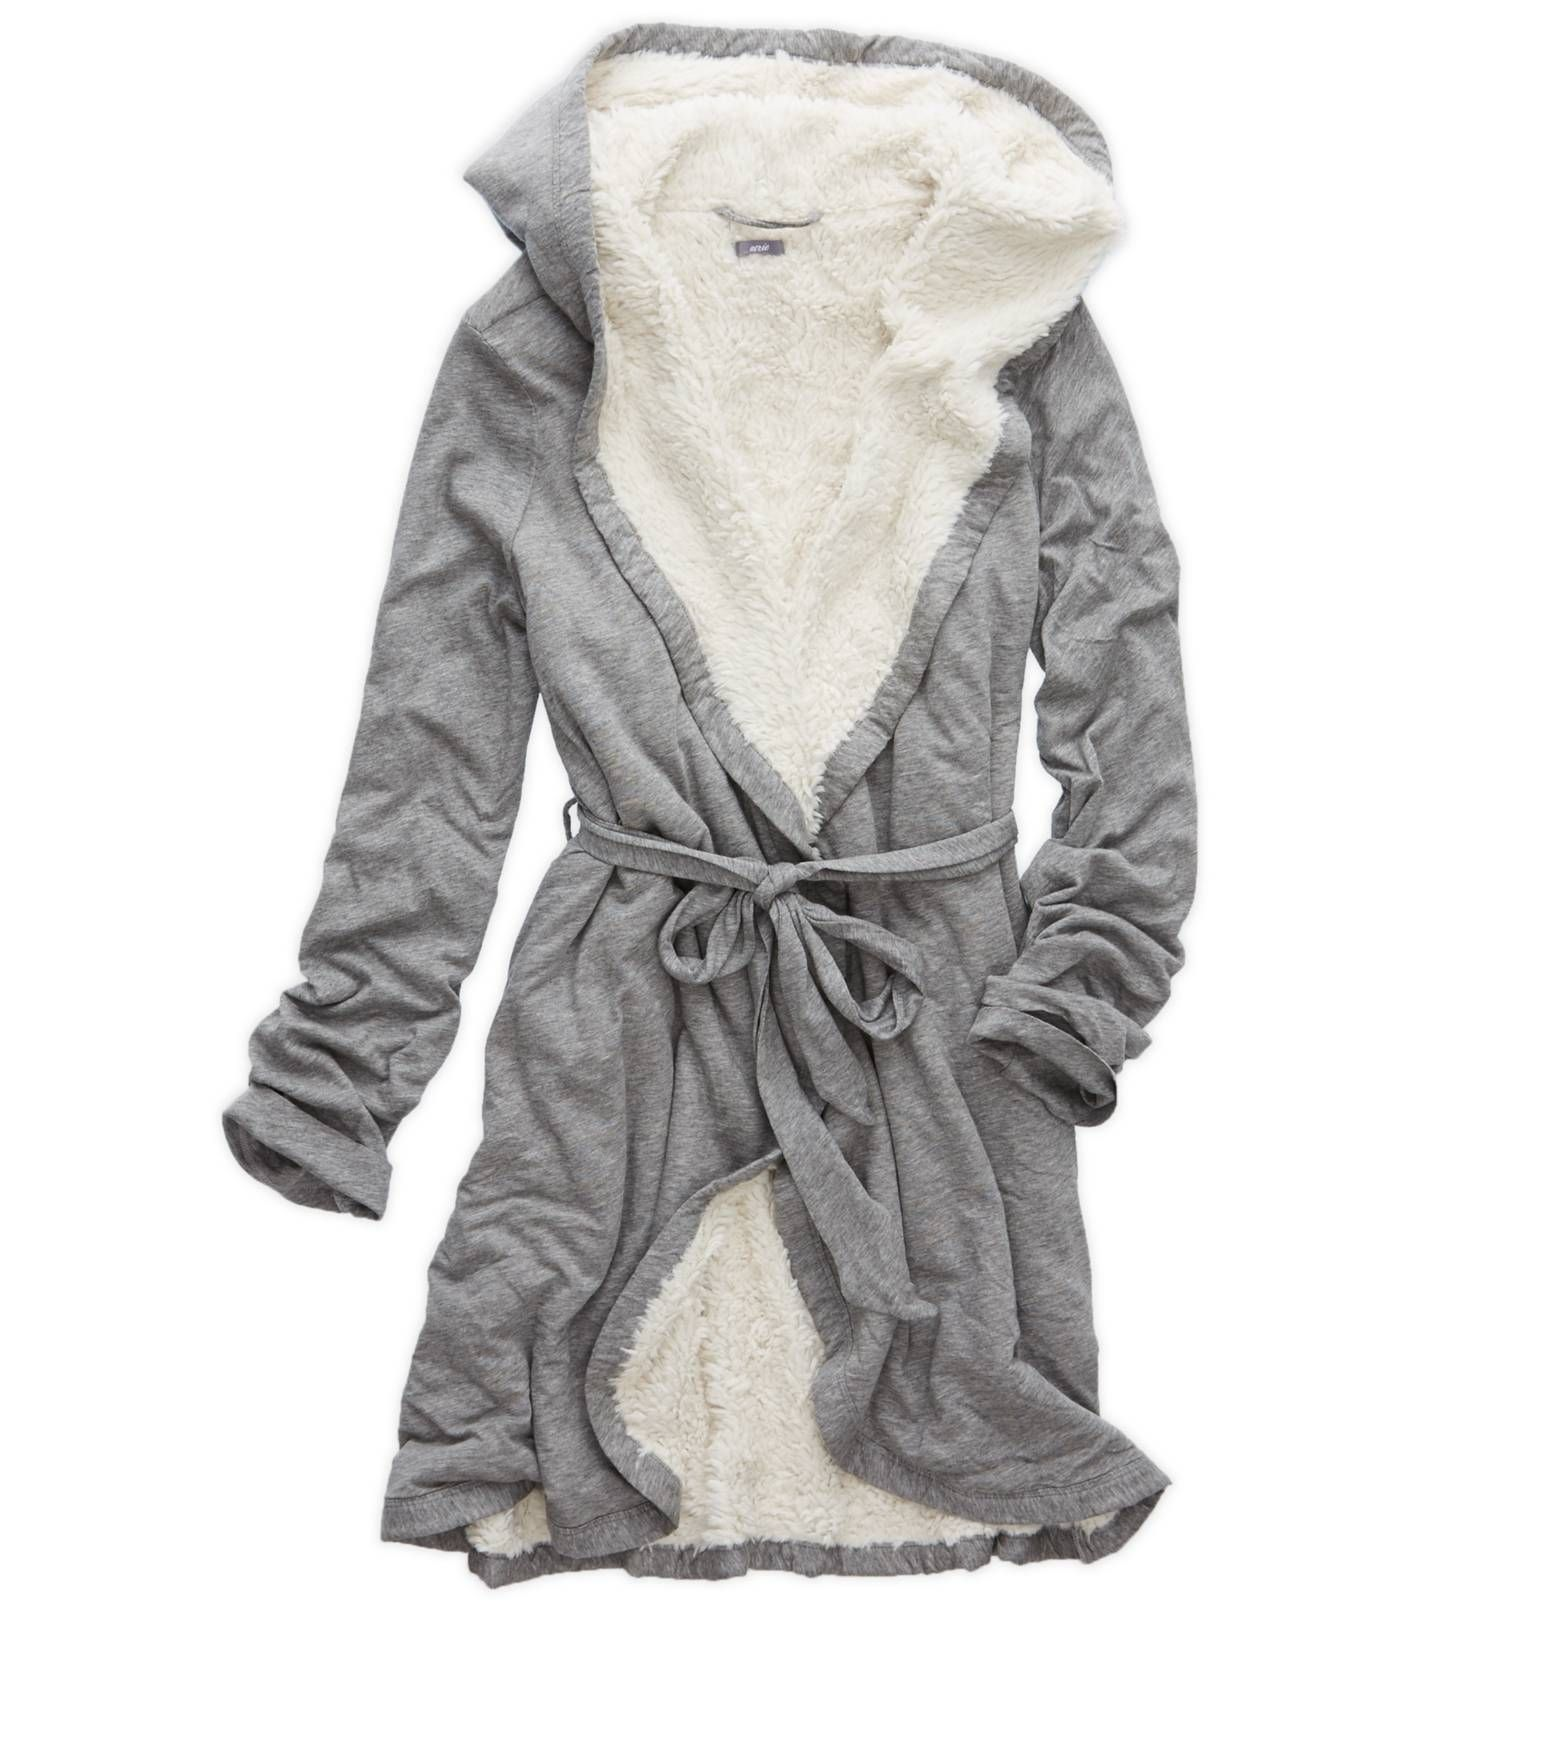 Aerie The Robe Grey Heather Perfect Cozy Gift Dark For XPkNwOZn80